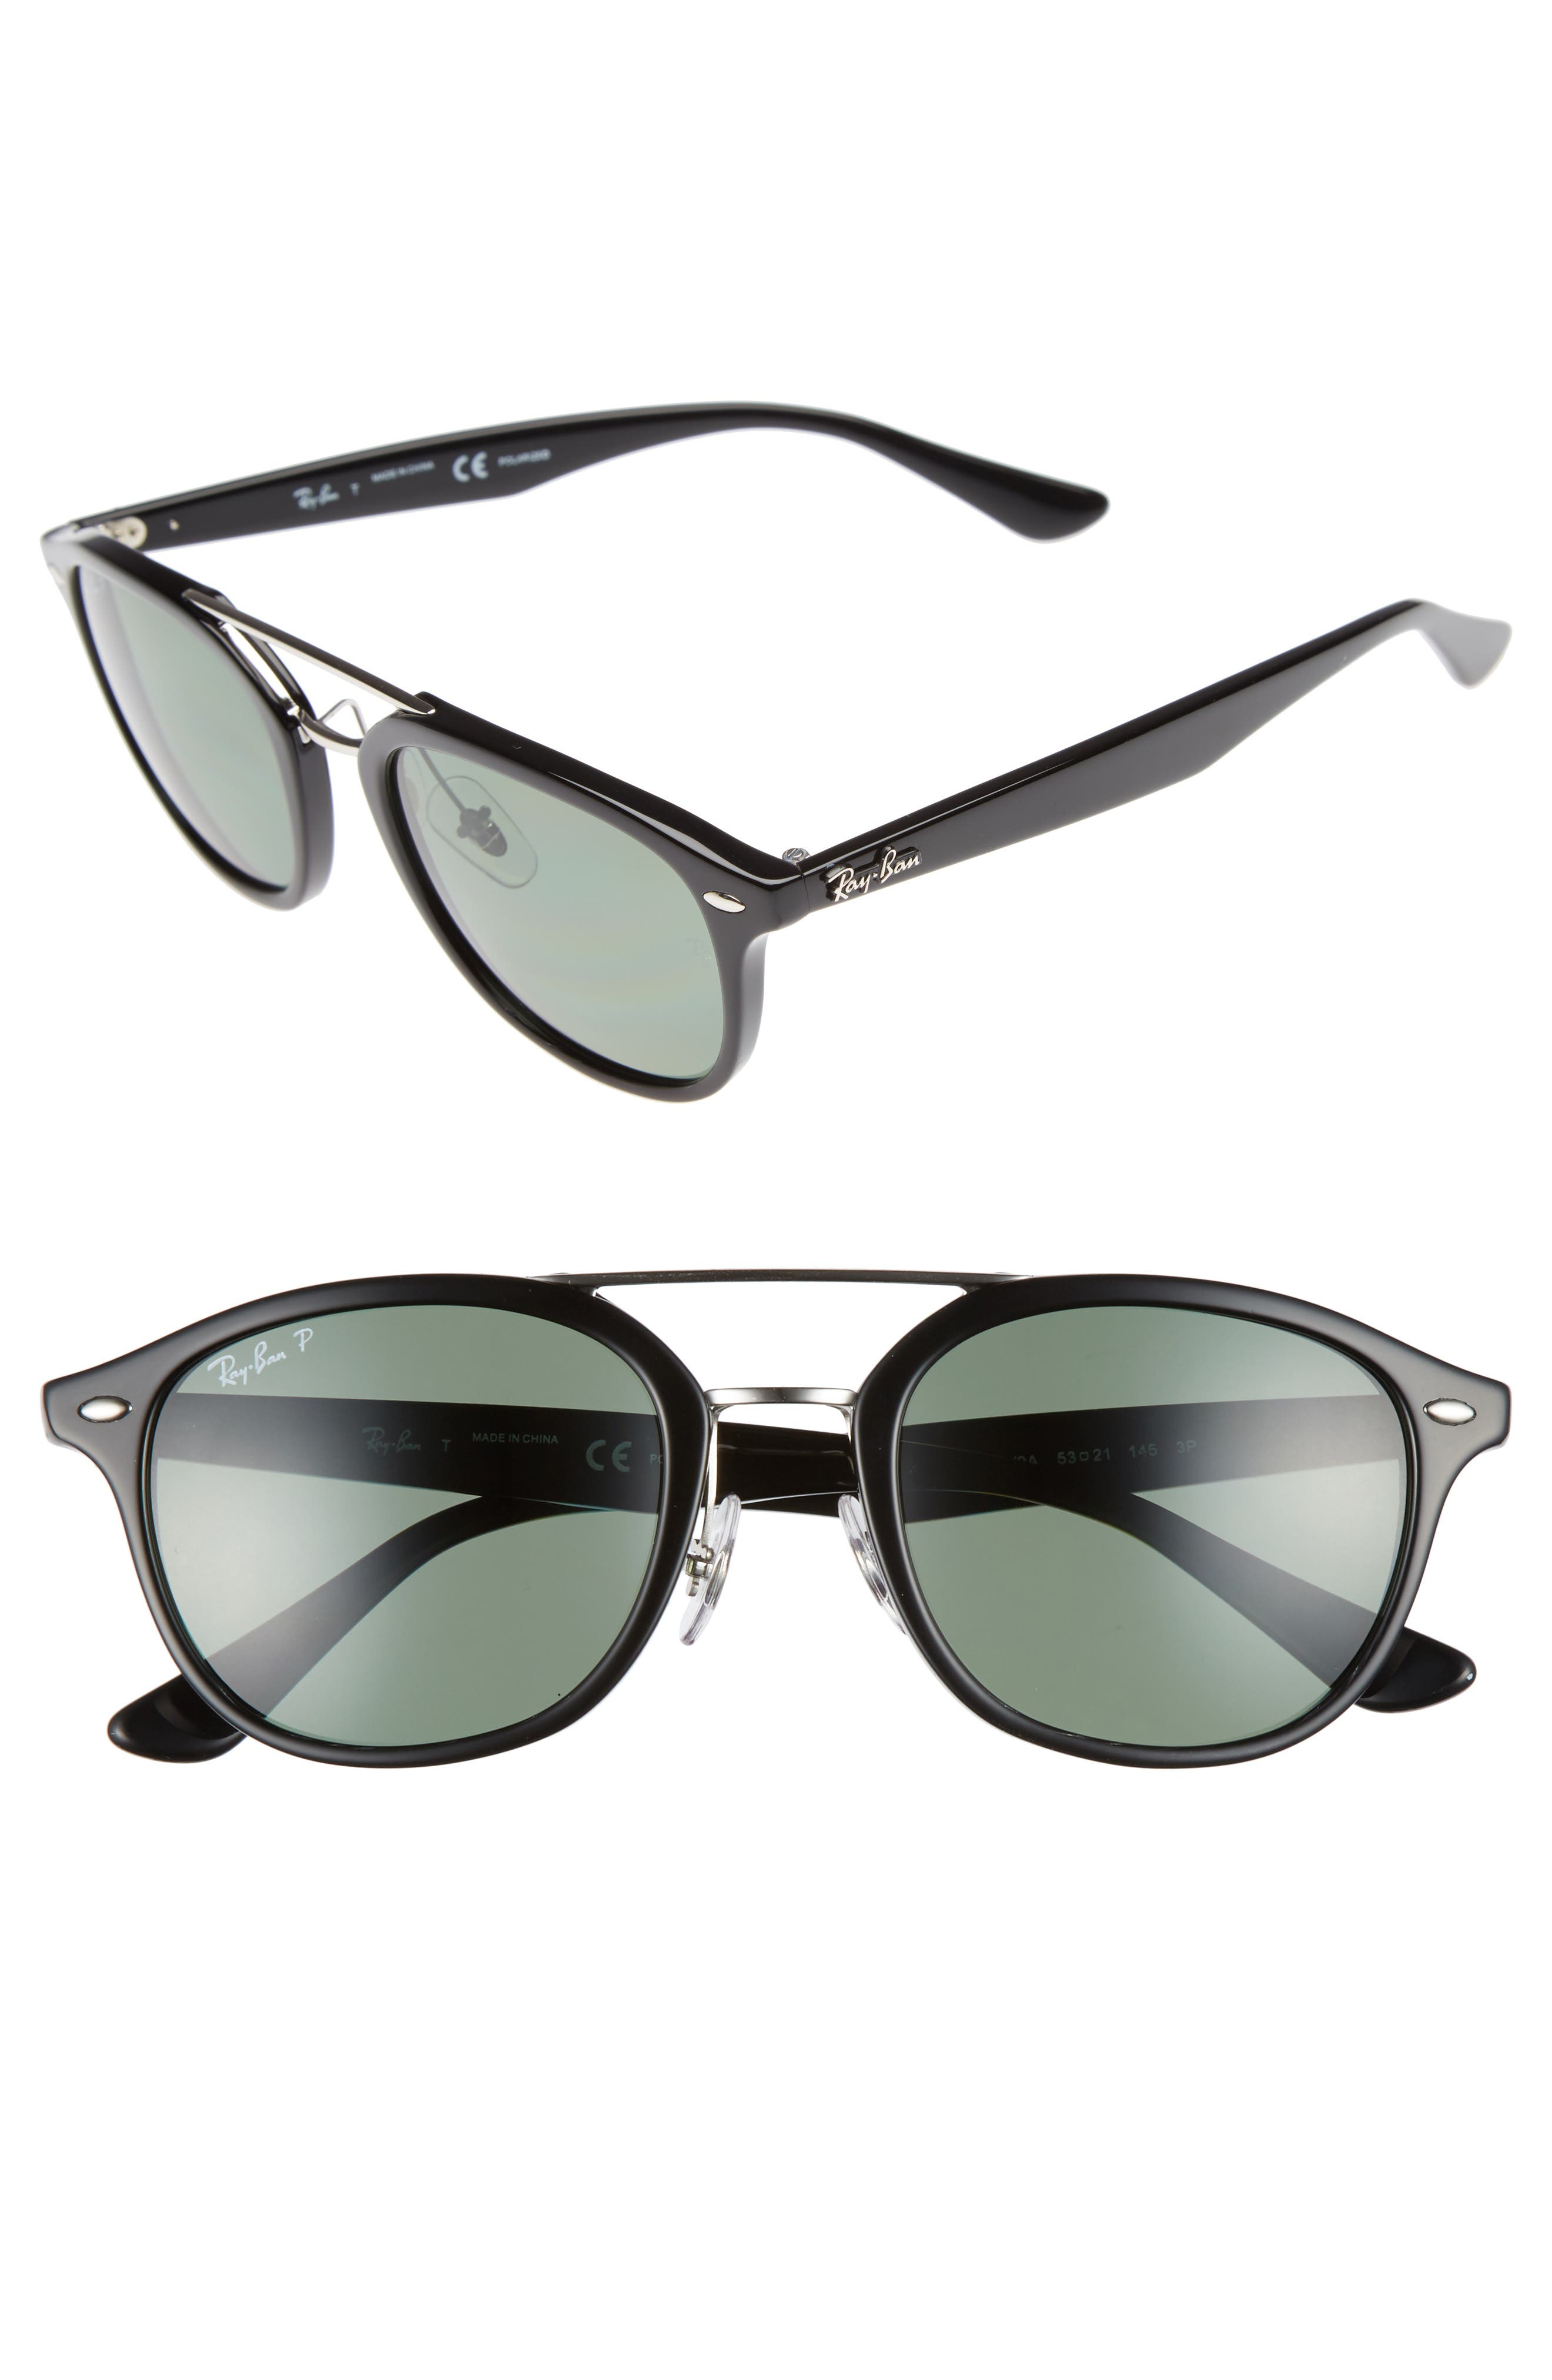 53mm Polarized Sunglasses,                         Main,                         color, Black